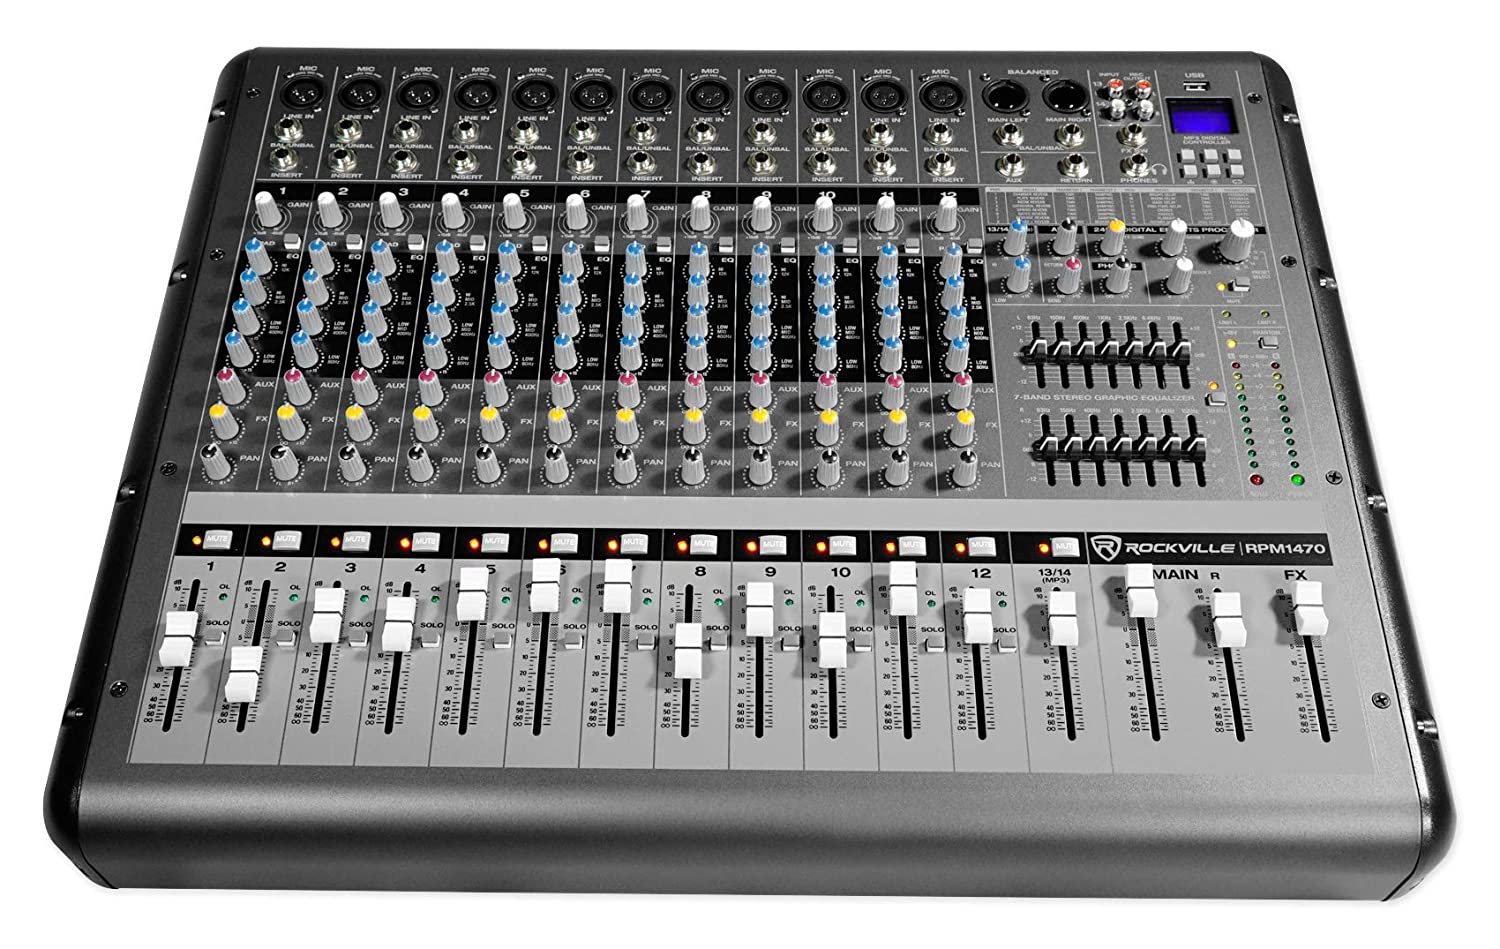 Rockville RPM1470 14-Channel 6000w Powered Mixer, USB, Effects For Church/School RPM1470 HOW